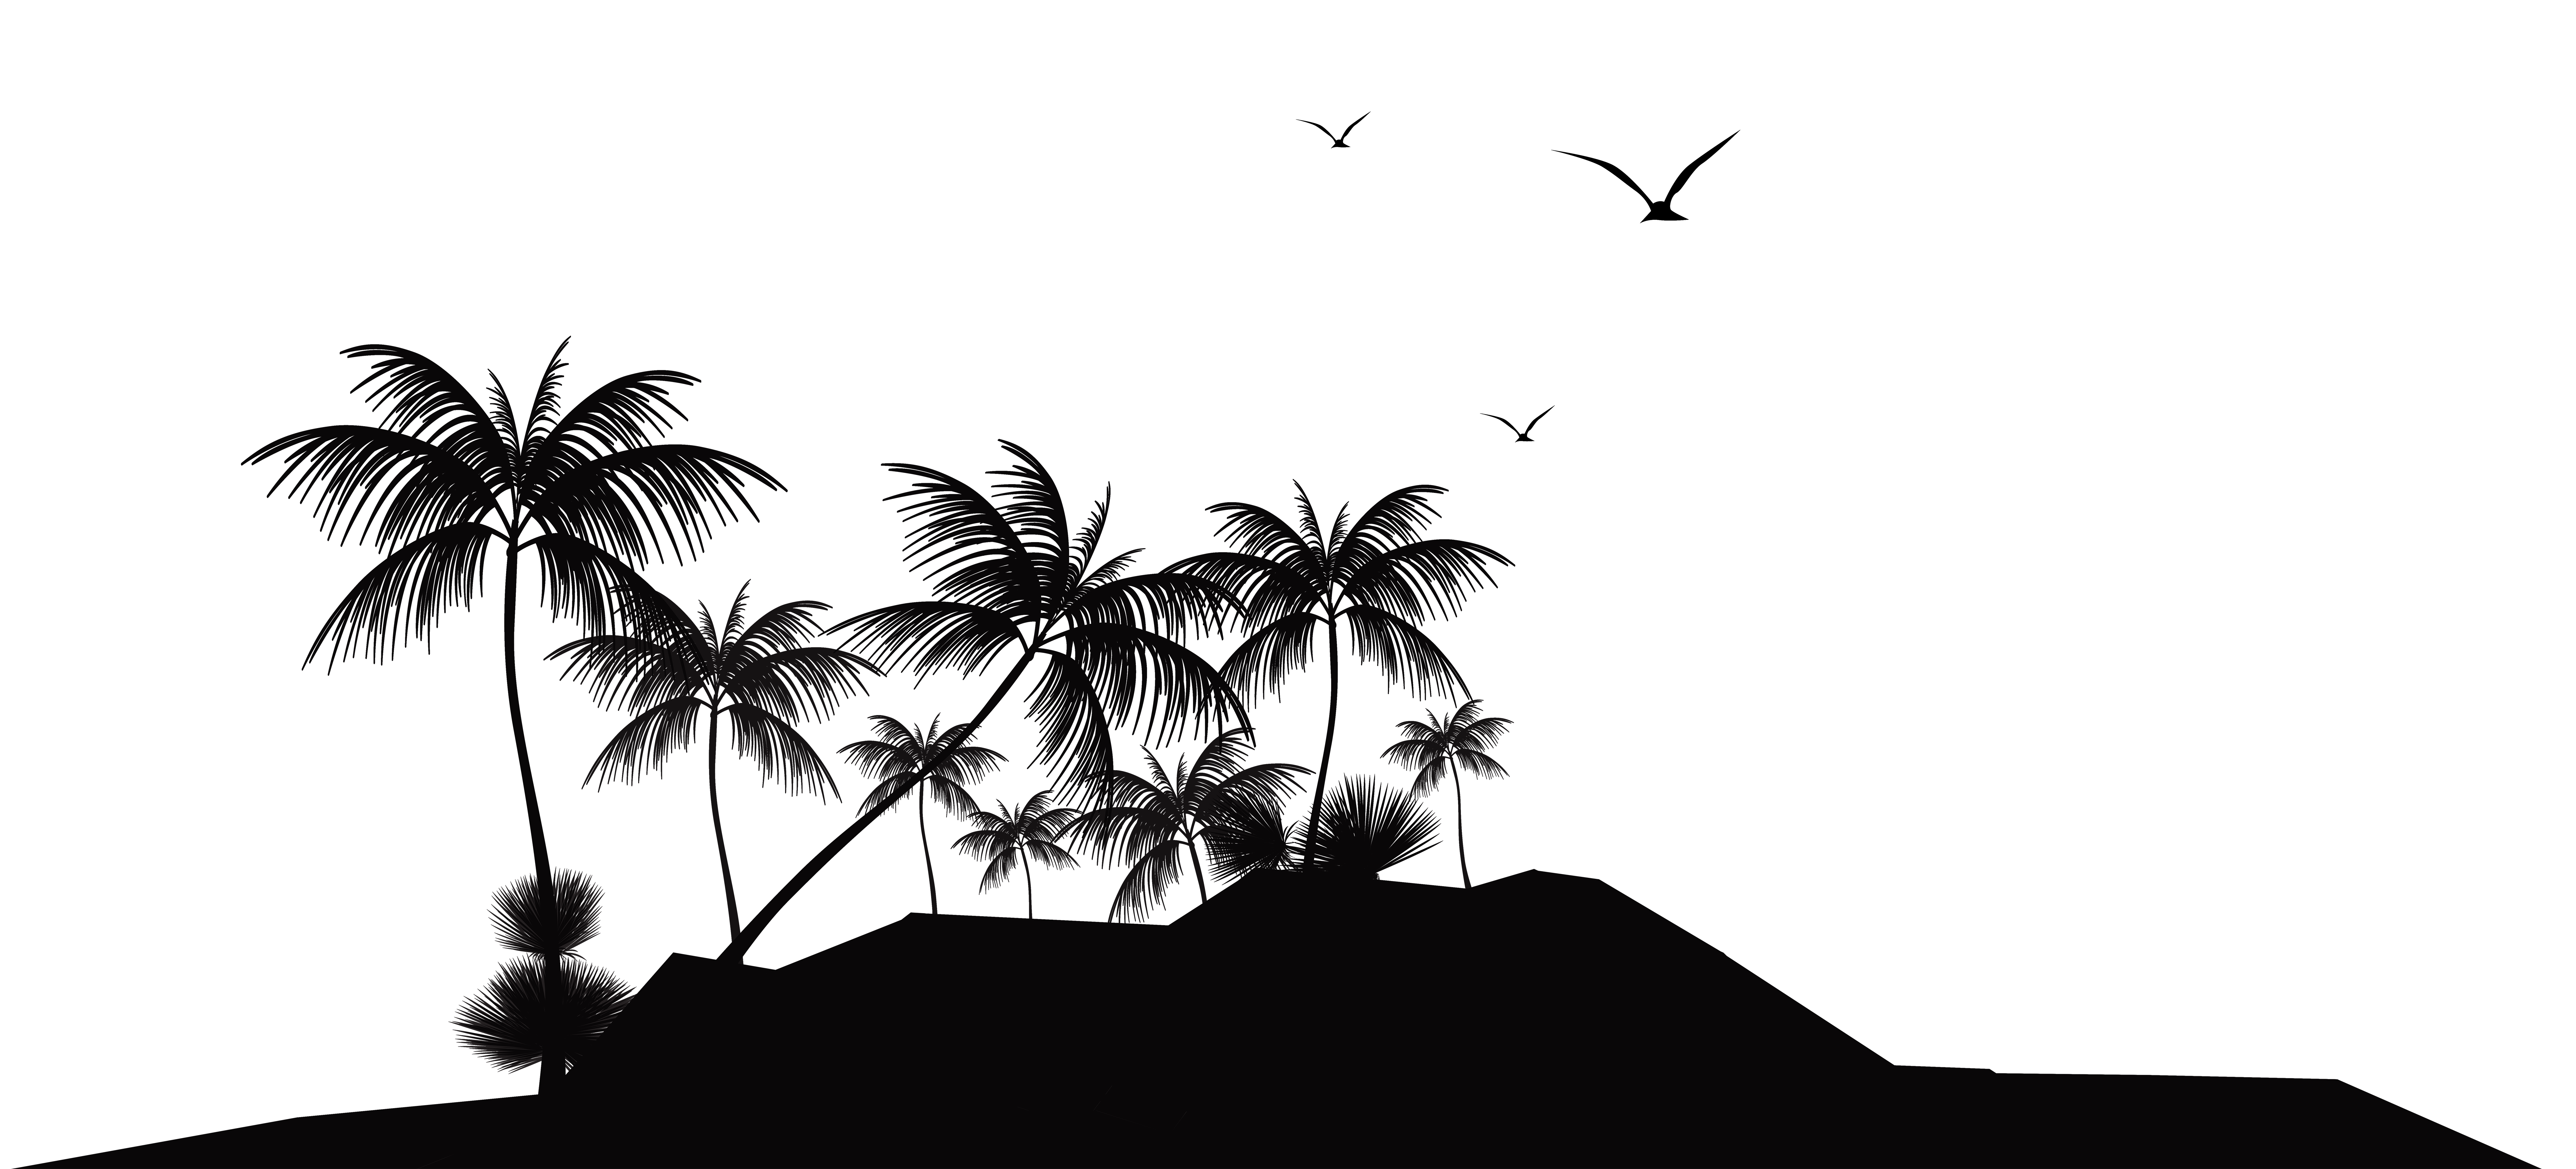 jpg free stock Island clipart. Tropical silhouette png clip.